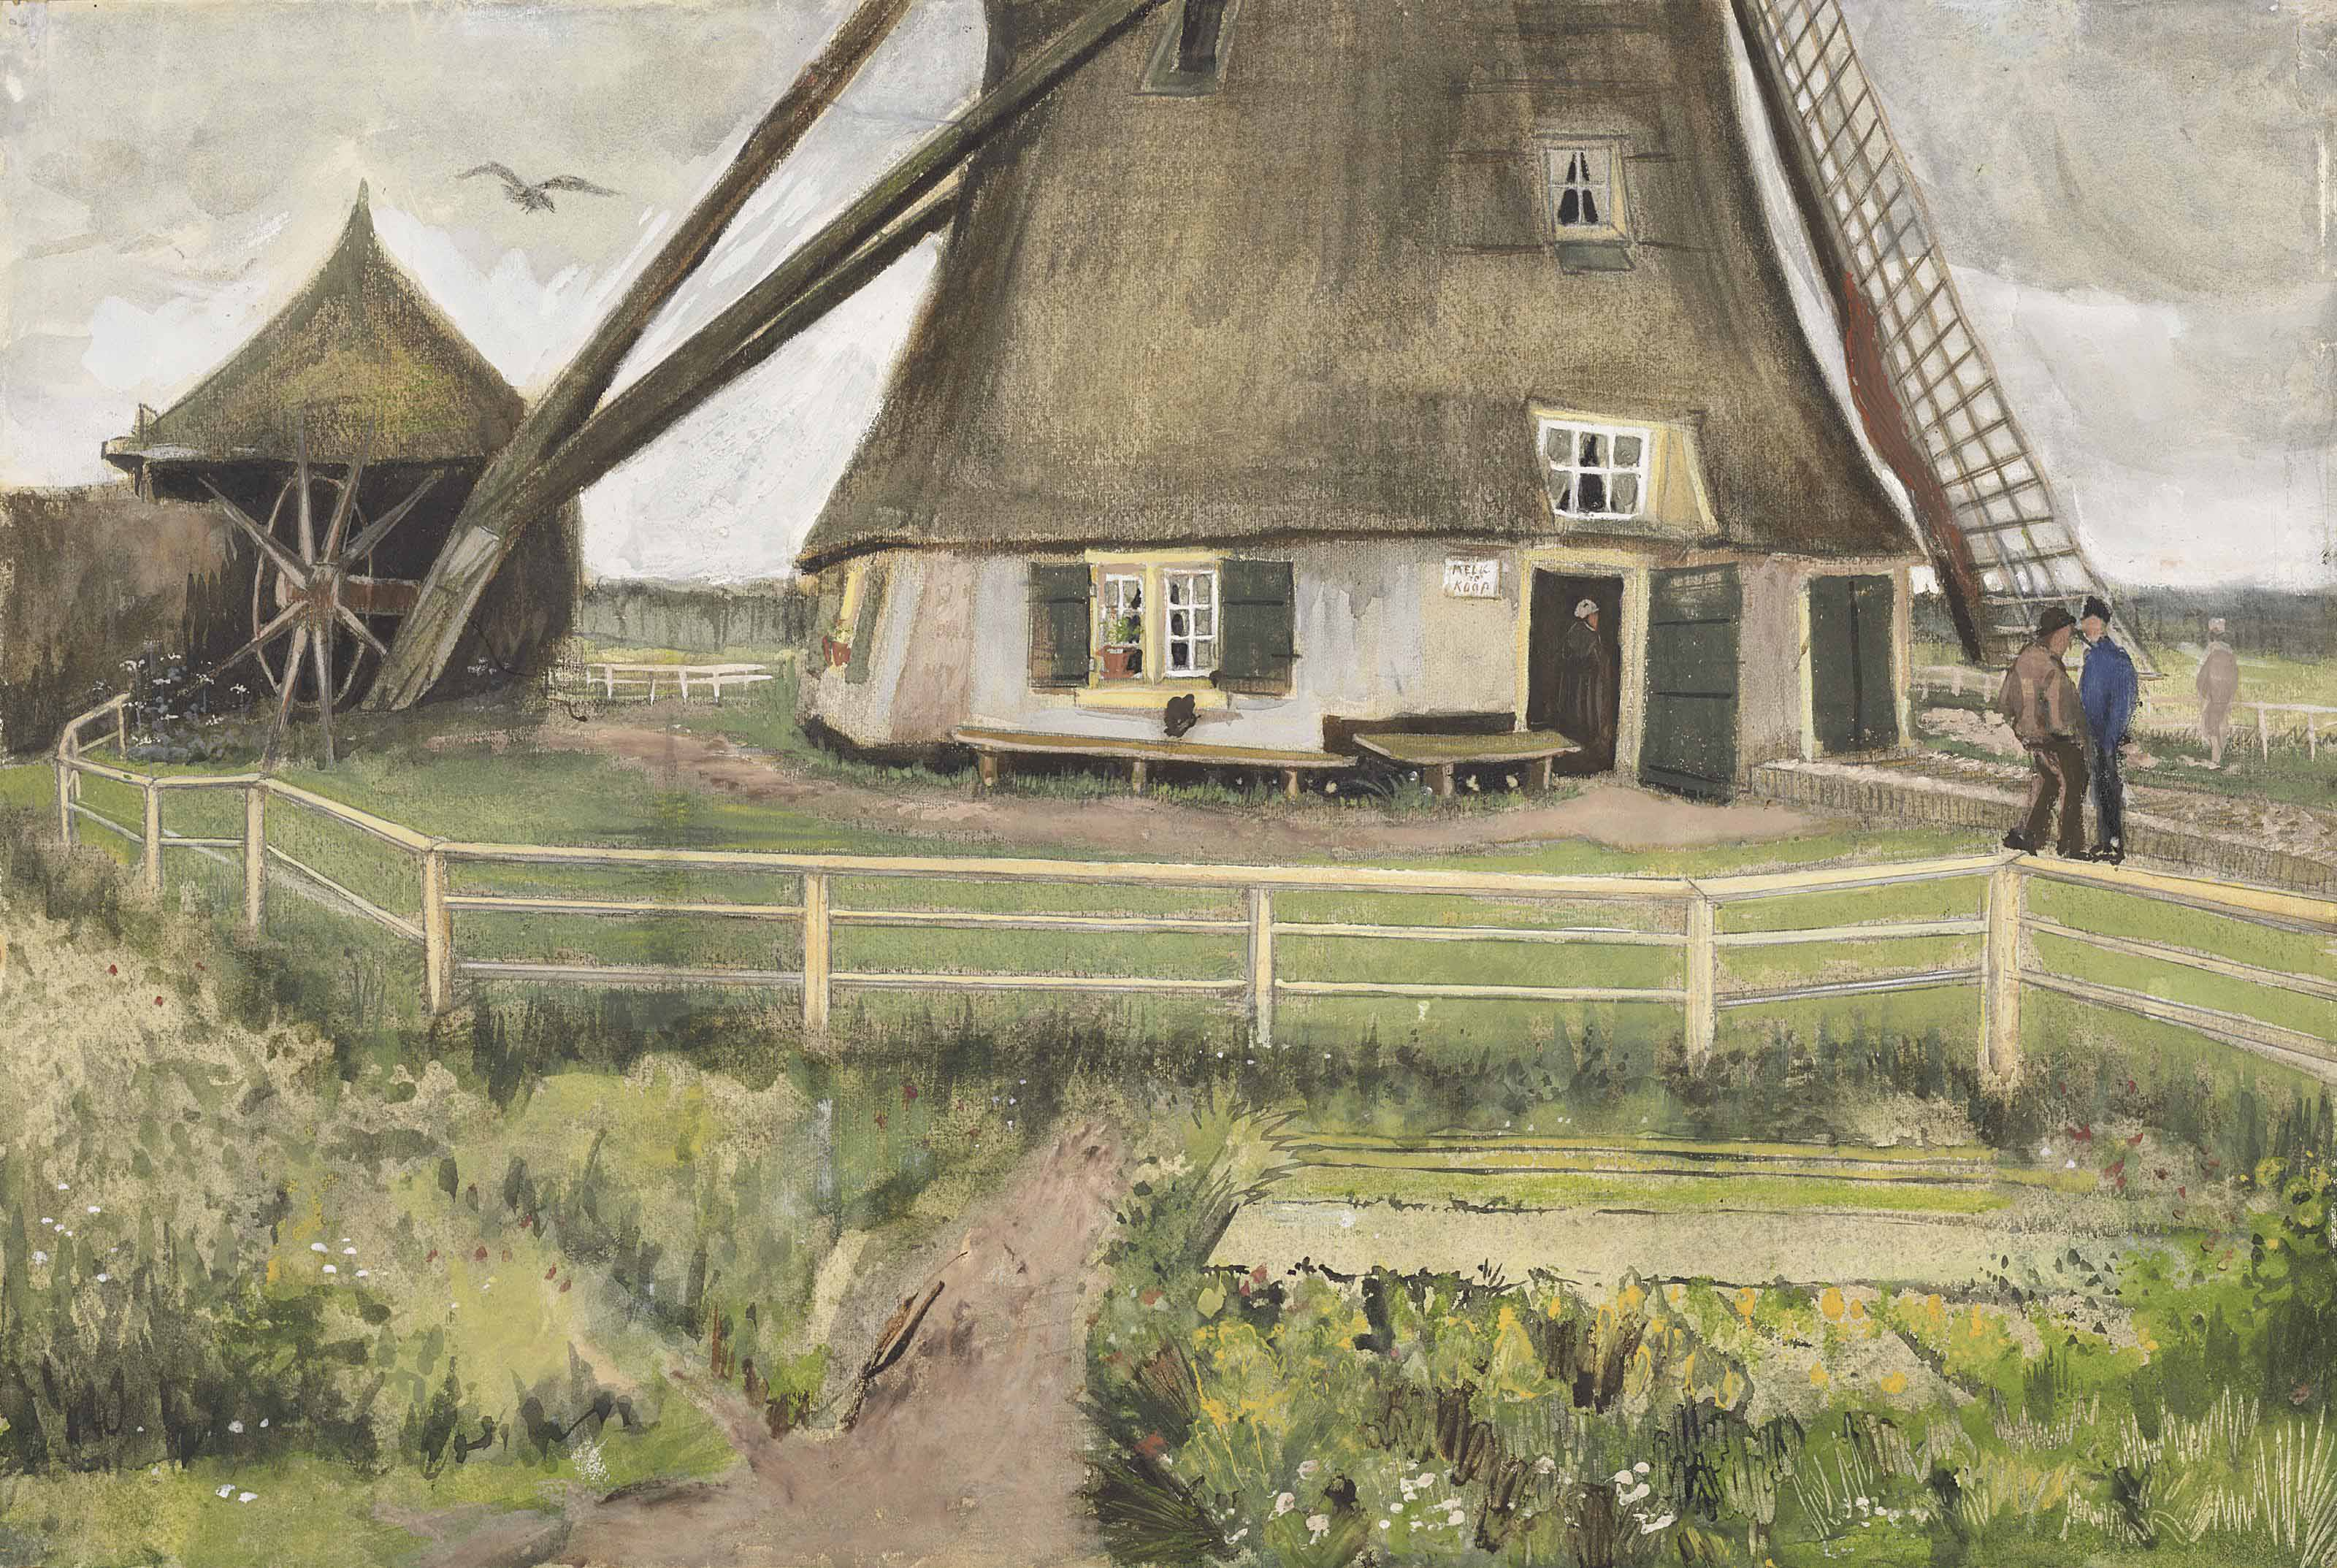 The 'Laakmolen' near The Hague (The Windmill)